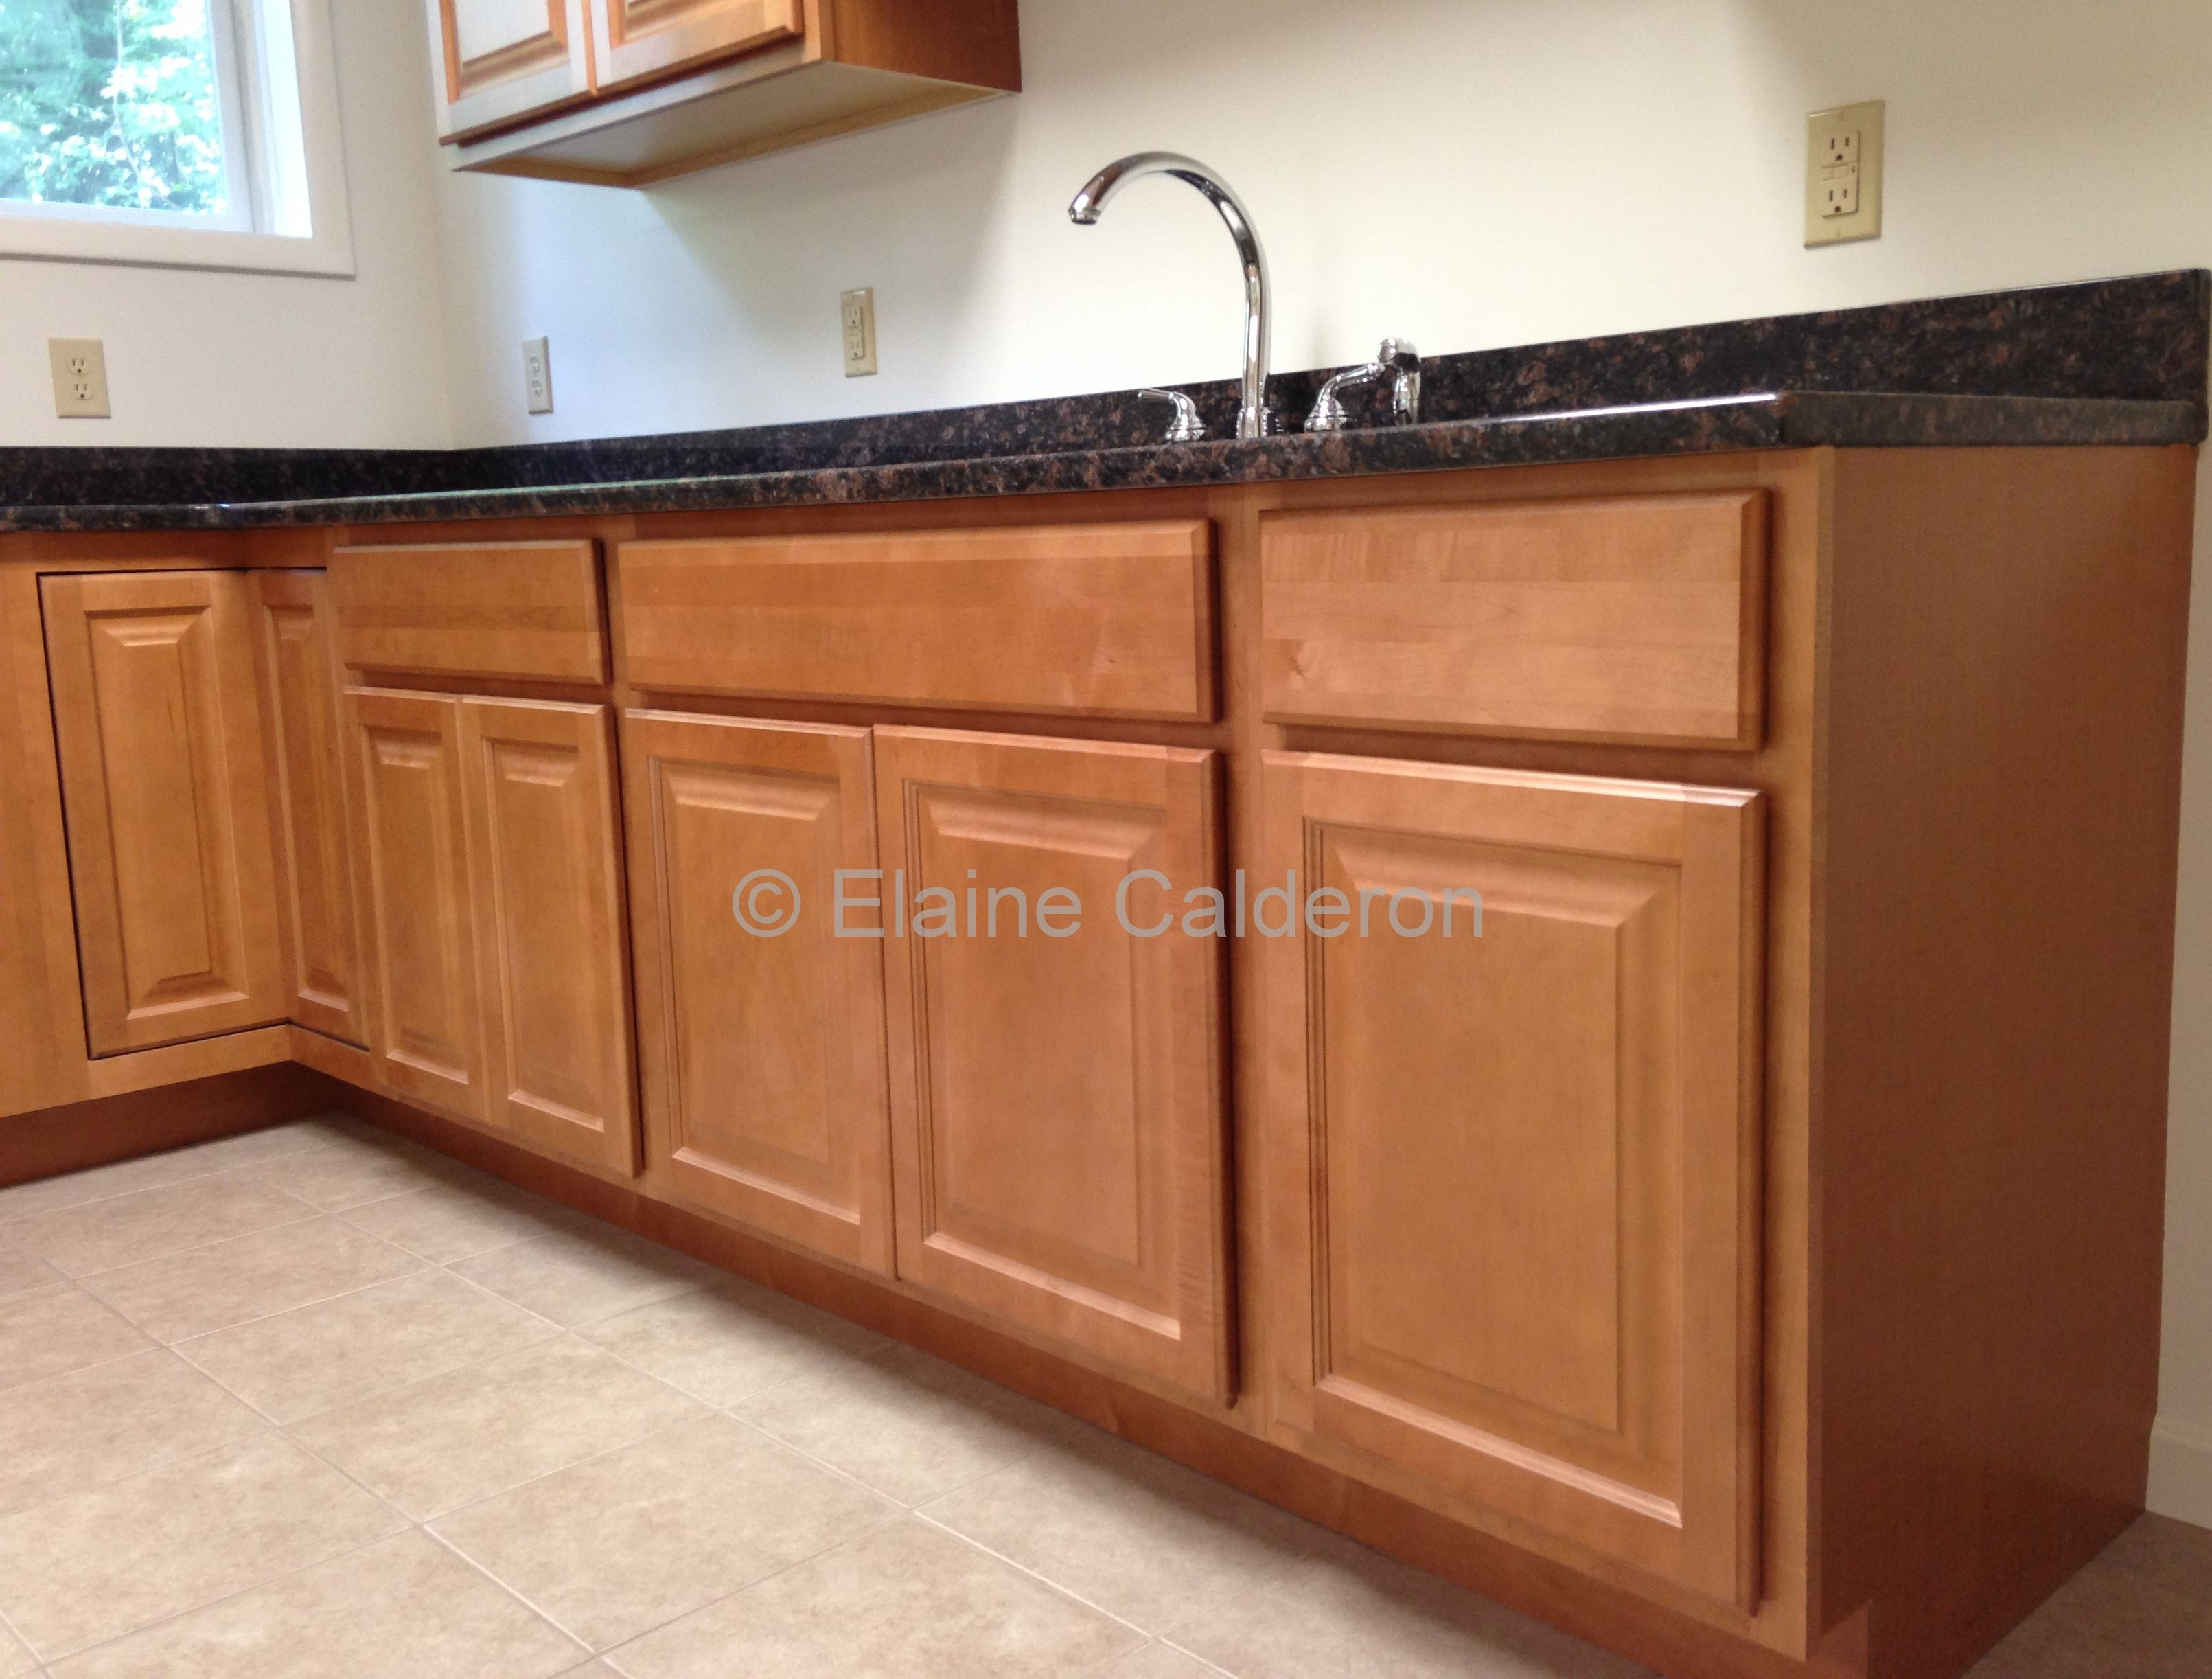 Wolf Classic Cabinets Saginaw Maple Door Honey Finish Granite Countertop Tan Brown Classic Cabinets Countertops Granite Countertops